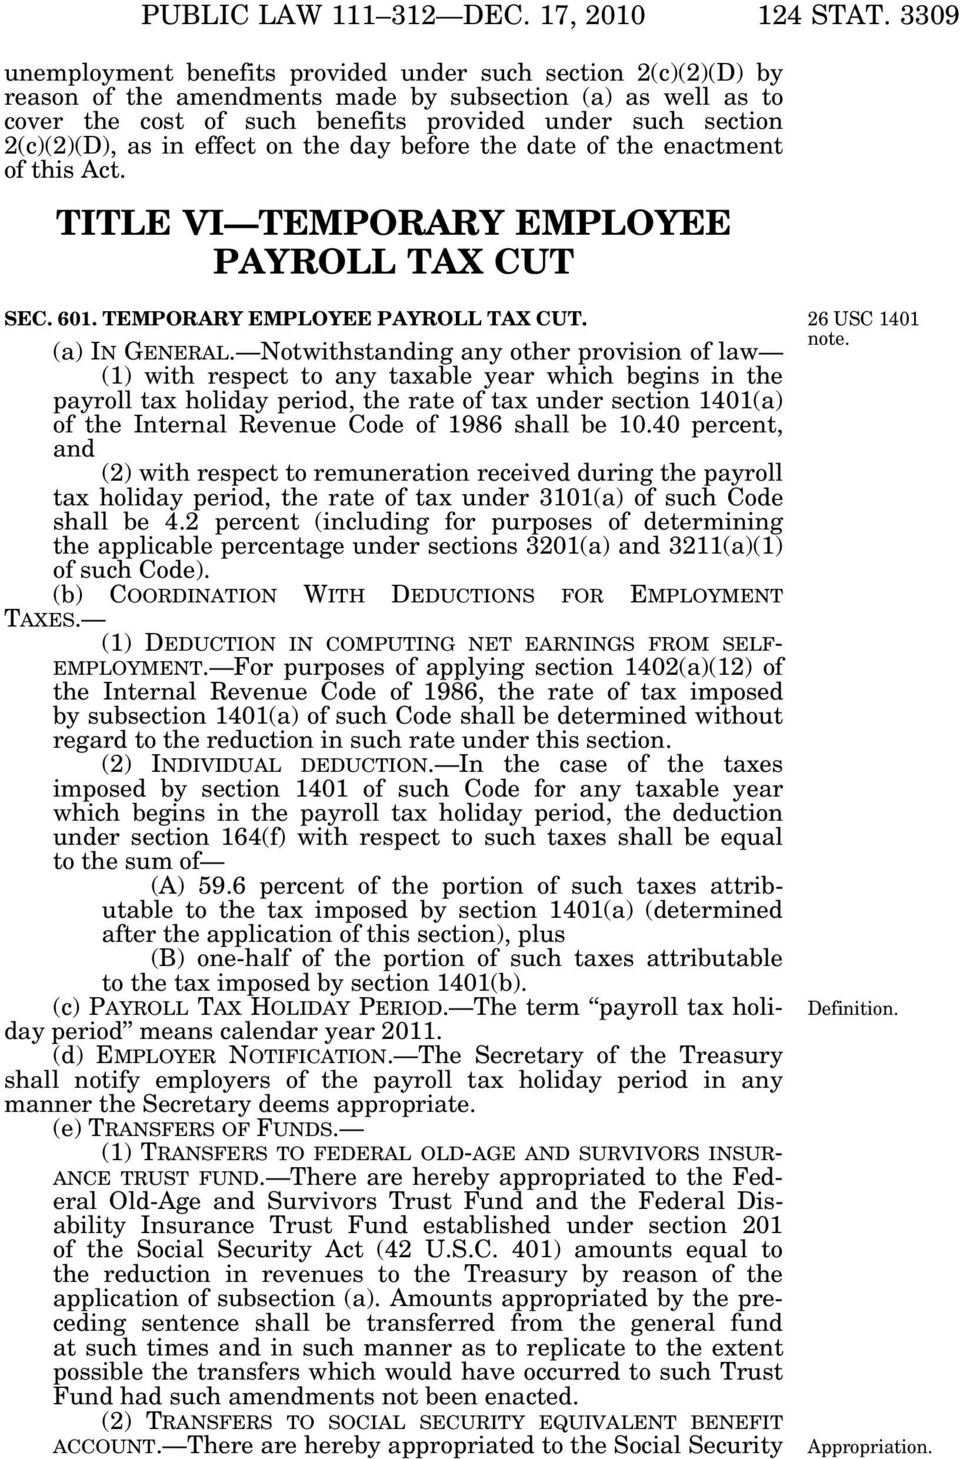 2(c)(2)(D), as in effect on the day before the date of the enactment of this Act. TITLE VI TEMPORARY EMPLOYEE PAYROLL TAX CUT SEC. 601. TEMPORARY EMPLOYEE PAYROLL TAX CUT. 26 USC 1401 (a) IN GENERAL.